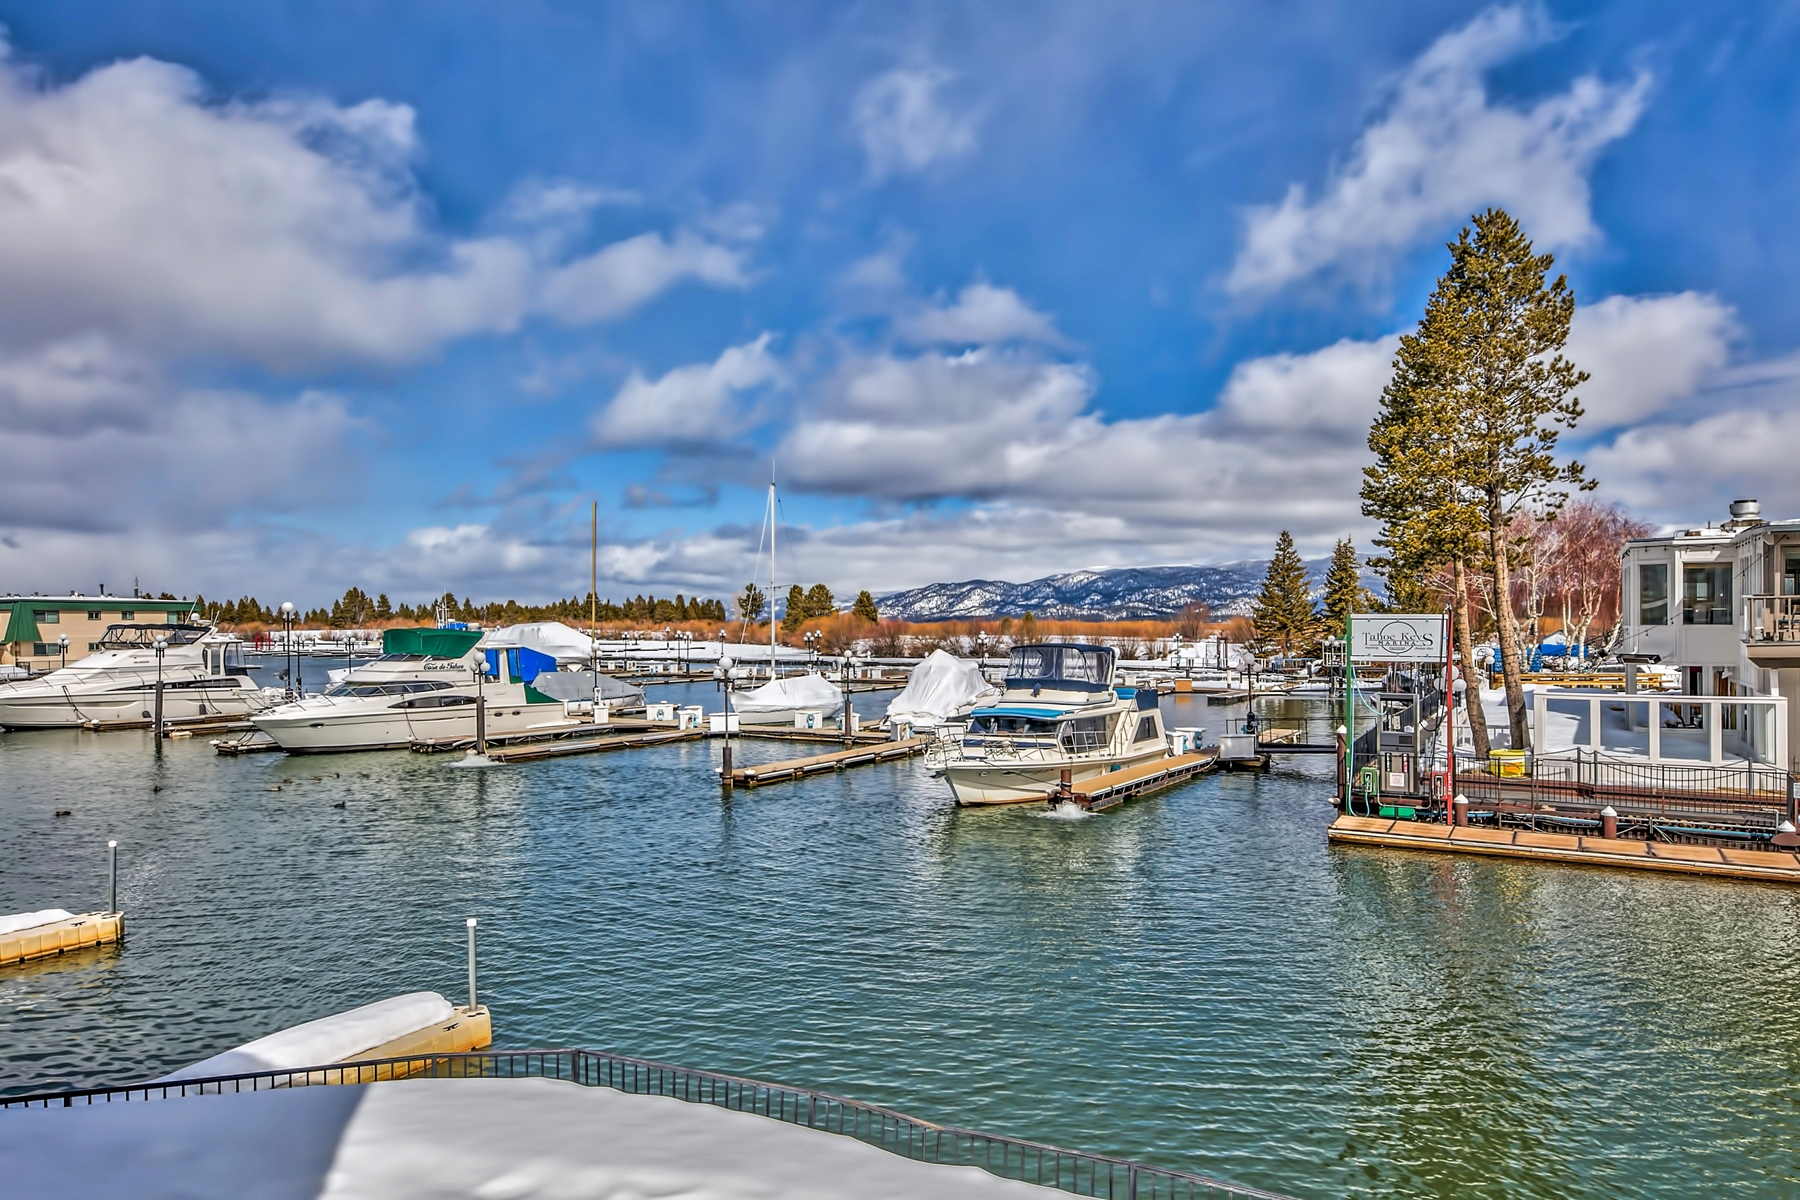 Additional photo for property listing at 477 Ala Wai #84, South Lake Tahoe, CA 96150 477 Ala Wai #84 South Lake Tahoe, California 96150 United States